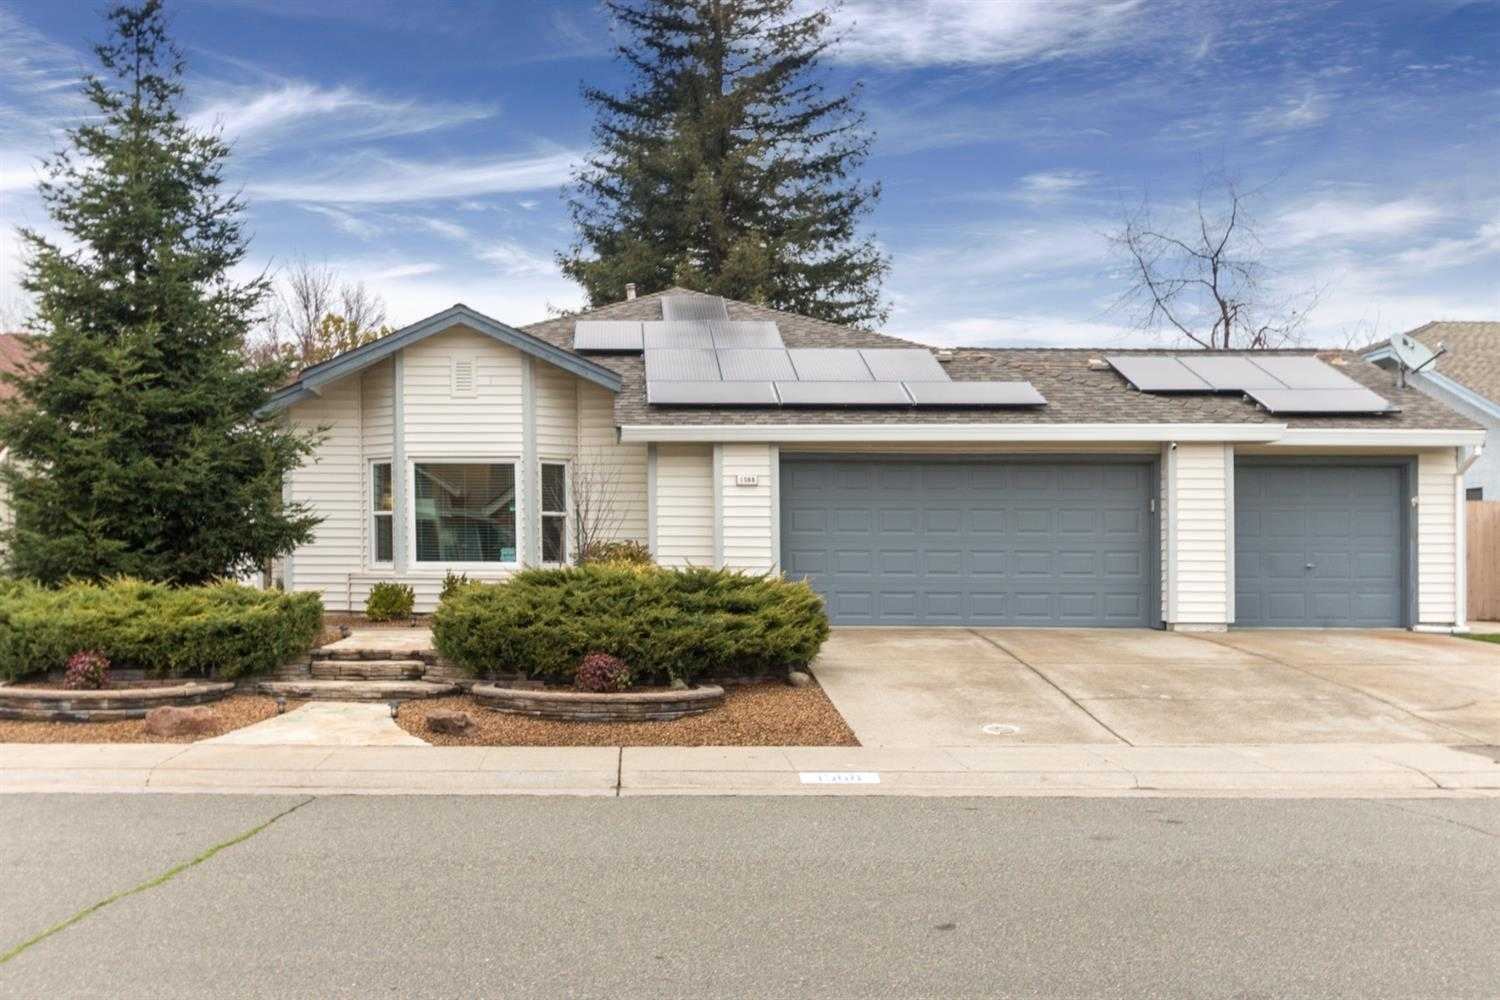 1568 E Colonial Pkwy Roseville, CA 95661